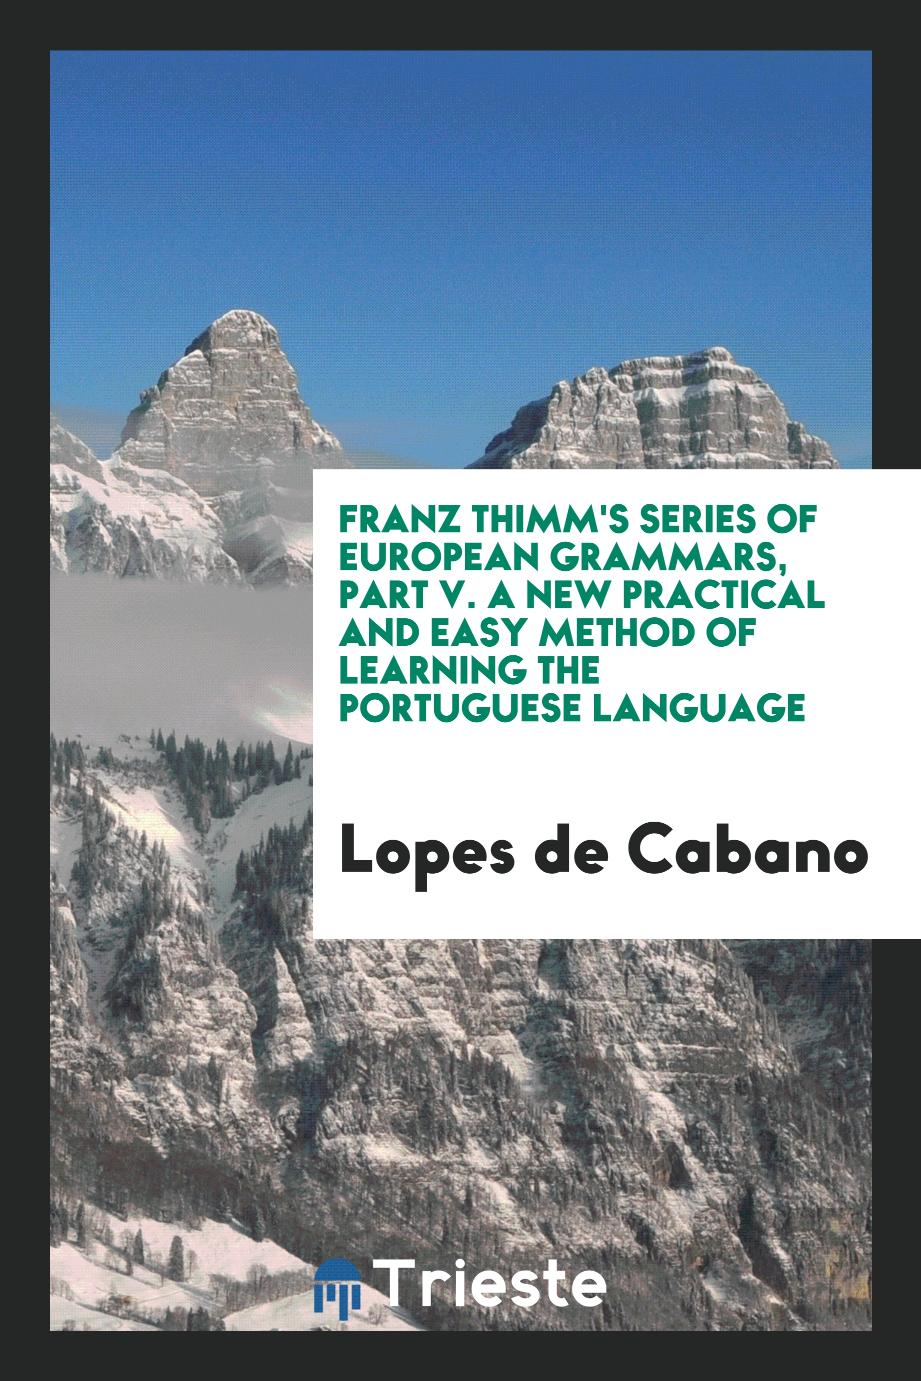 Franz Thimm's Series of European Grammars, Part V. A New Practical and Easy Method of Learning the Portuguese Language